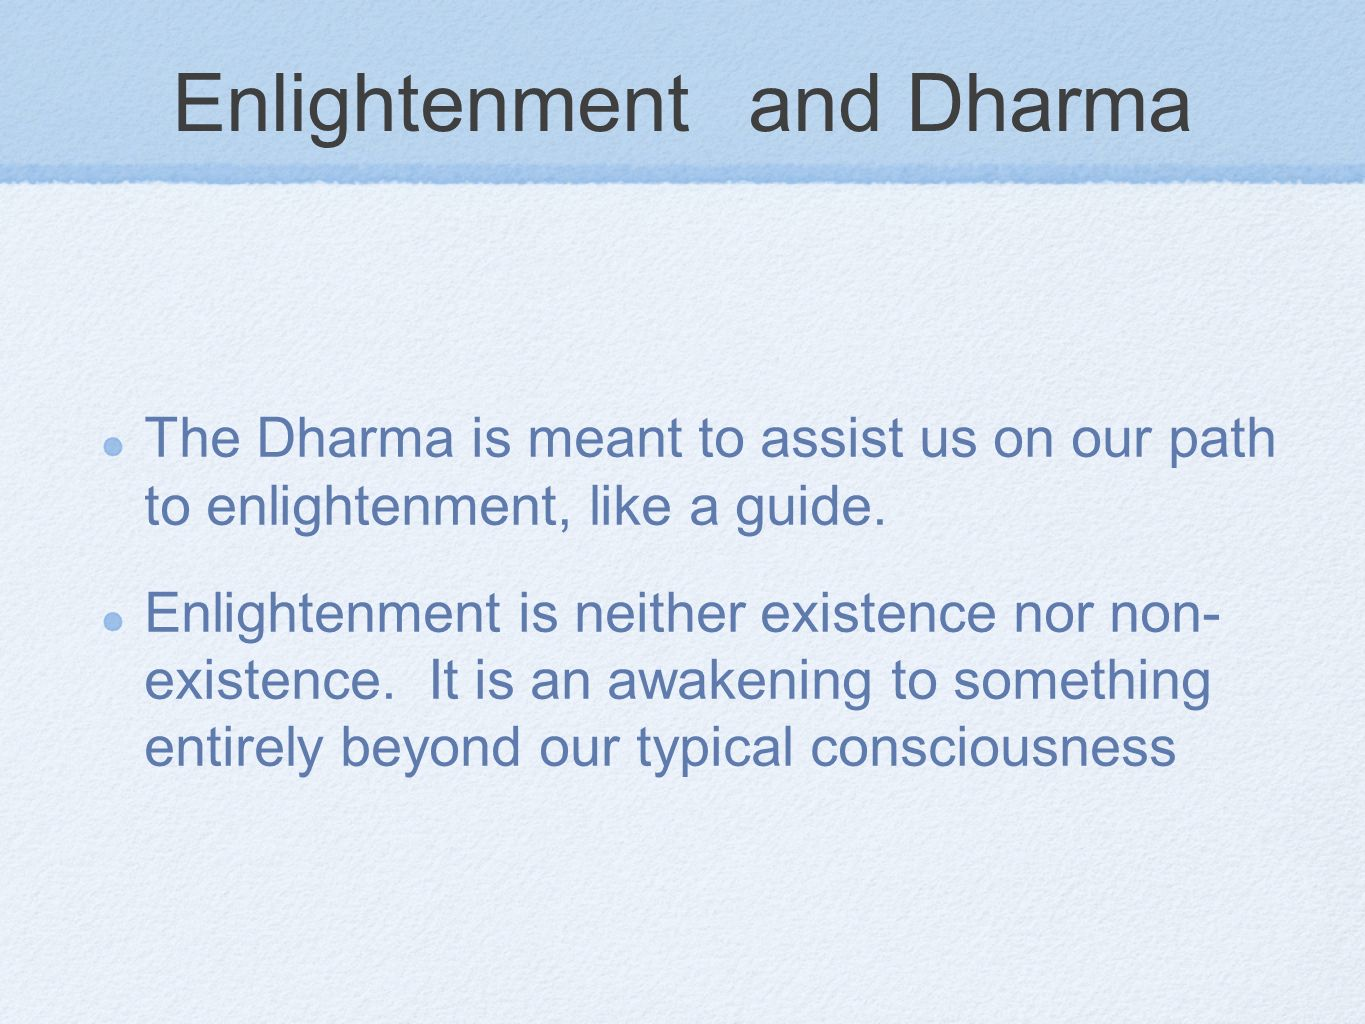 Enlightenment and Dharma